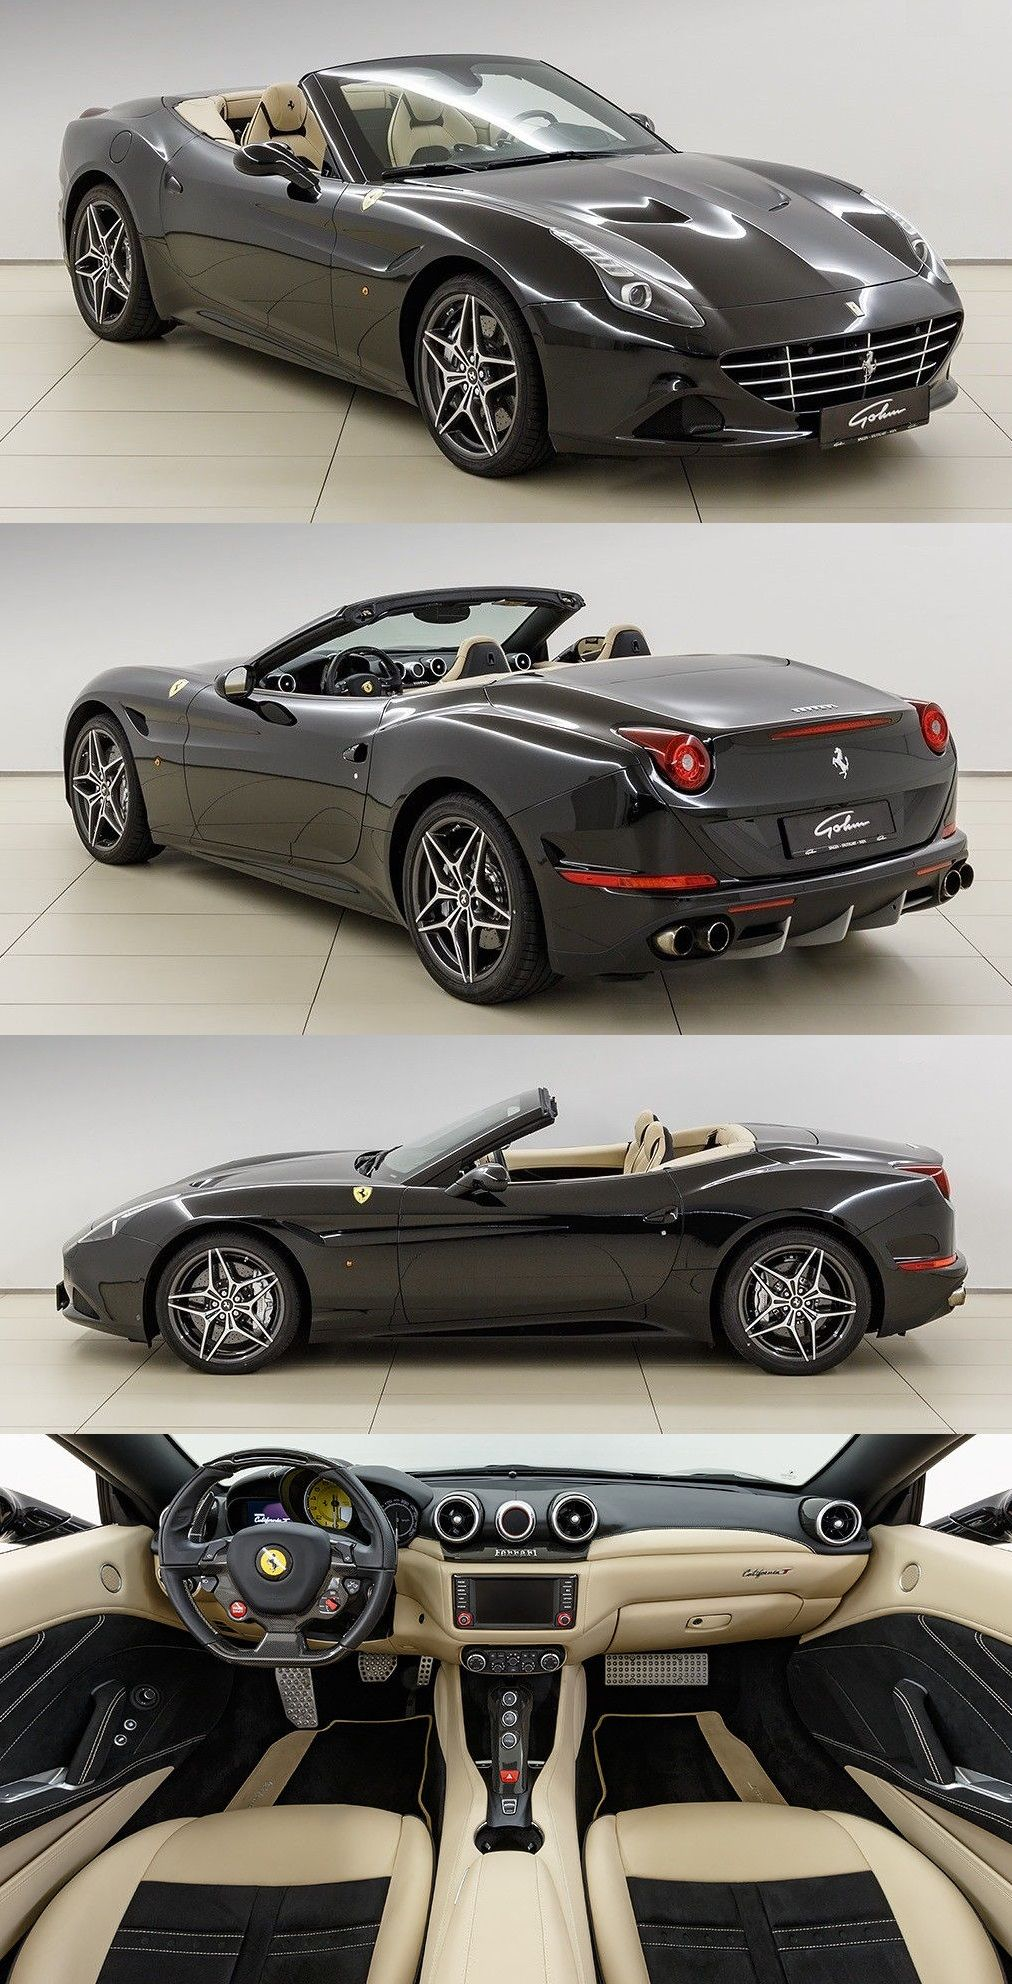 Low And Behold The Ferrari California The California Is The First Ferrari Ever With A Front Mounted V8 As In 2020 Ferrari California Luxury Cars Dubai Cars